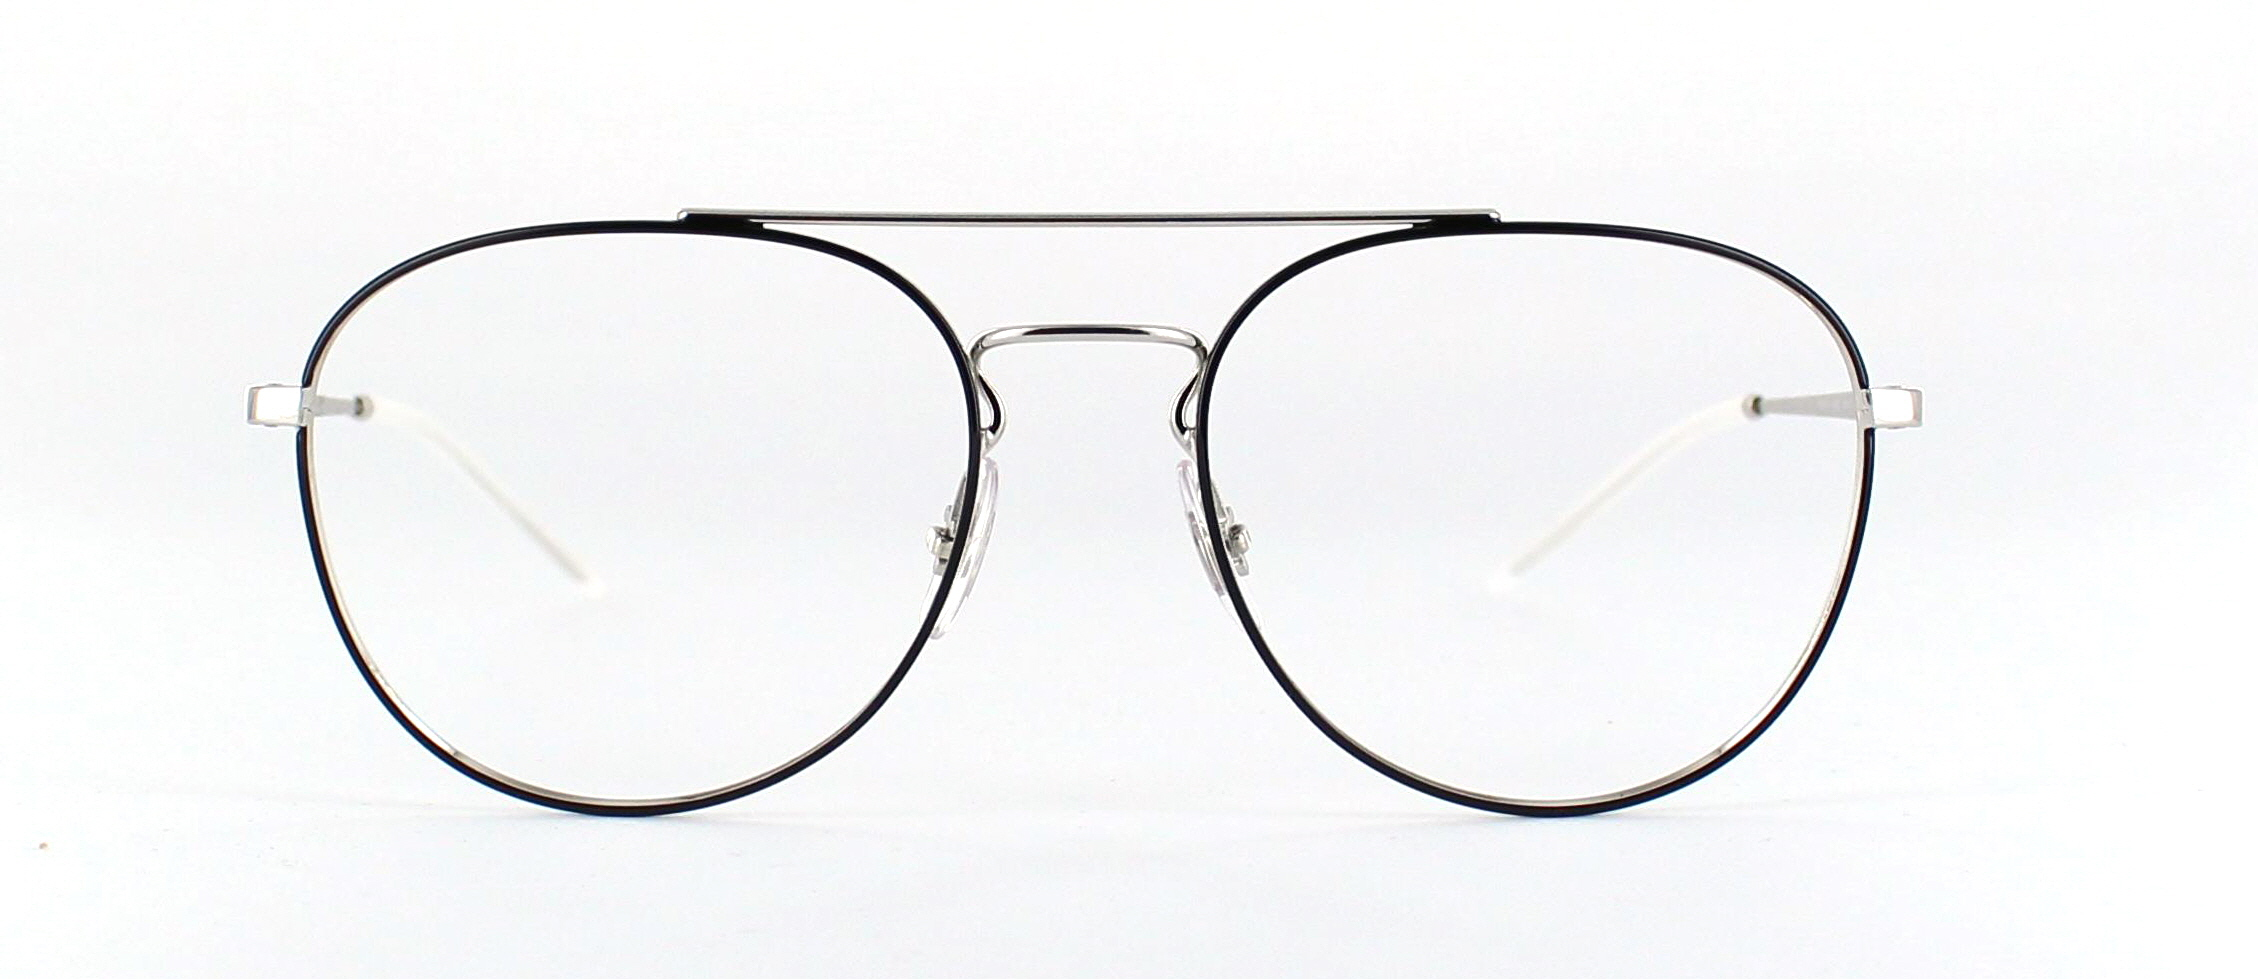 Ray Ban zilver 1 front